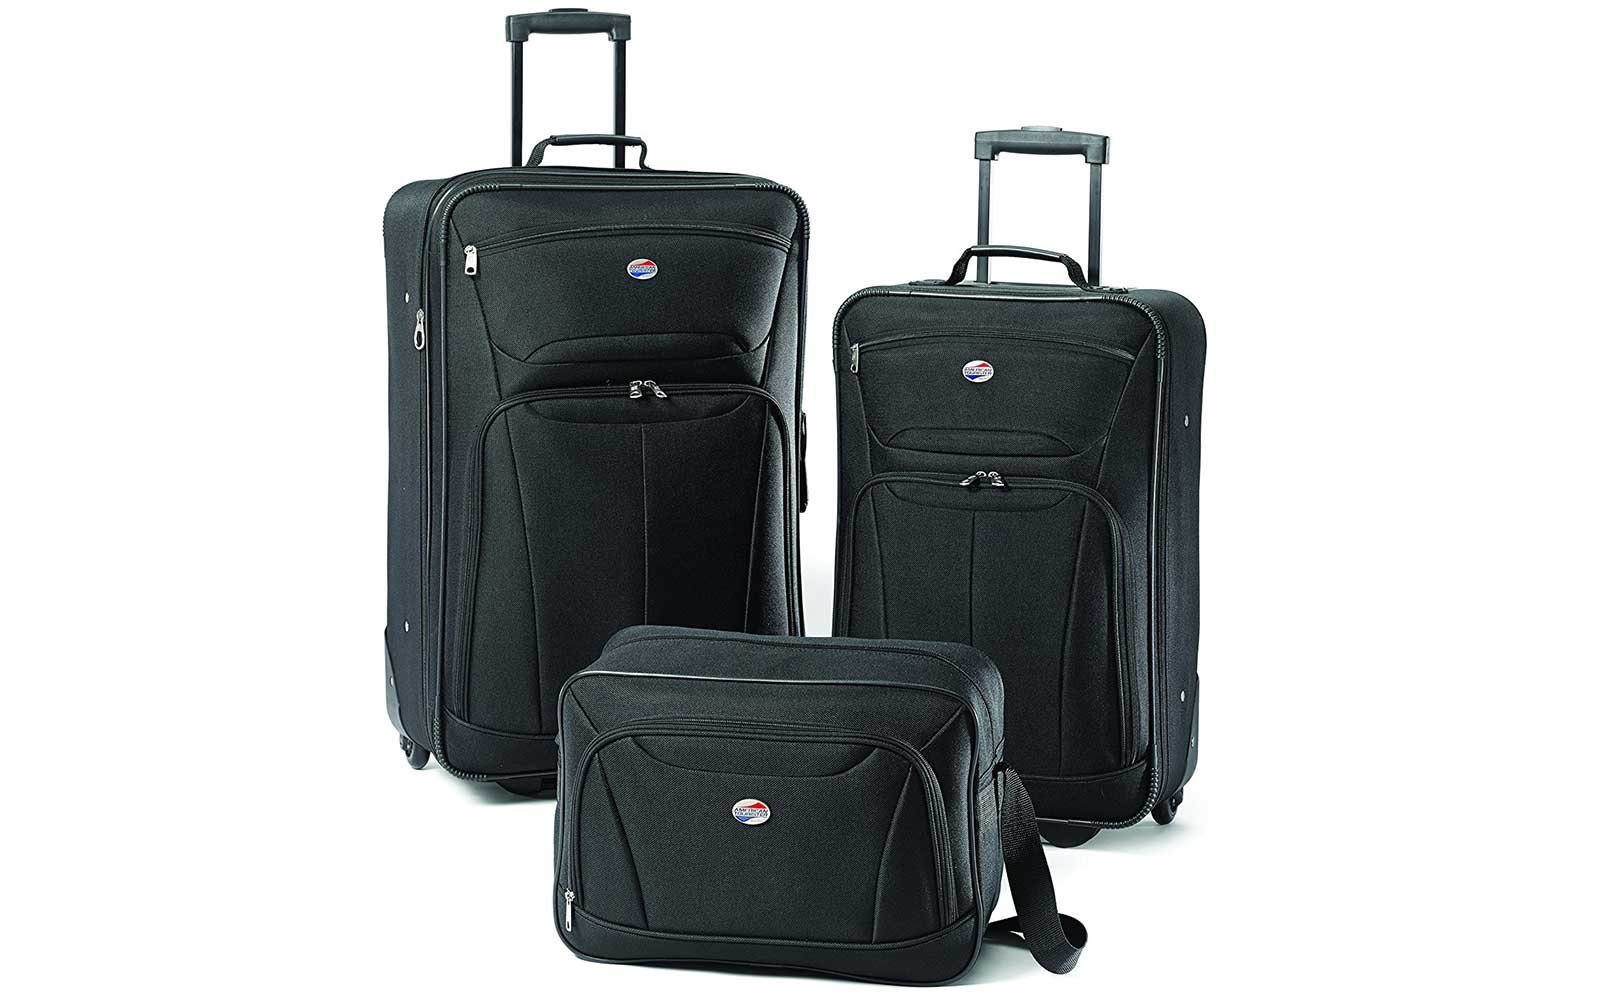 6c1c43b3ef 2 Piece Amazon Luggage Suitcases - Year of Clean Water